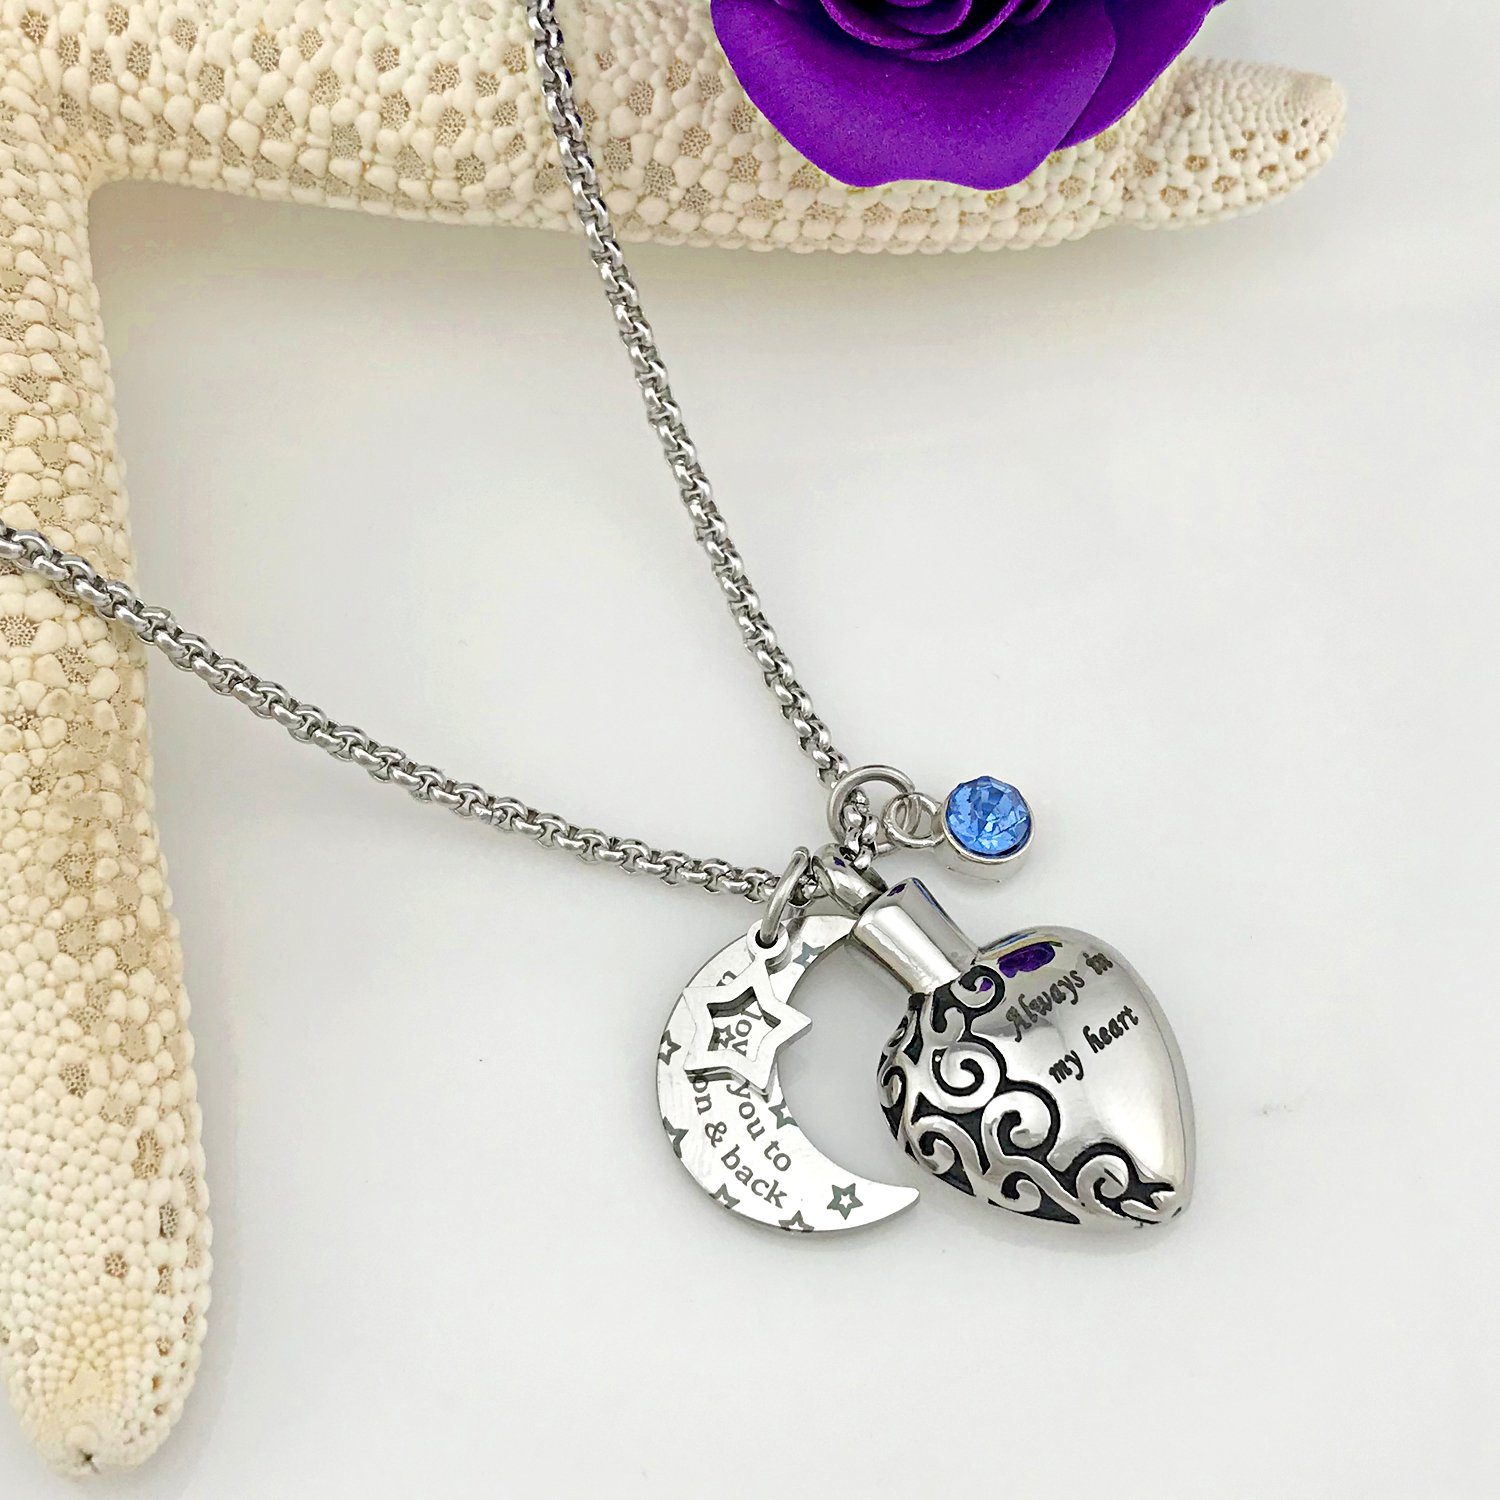 YOUFENG Urn Necklaces for Ashes Always in My Heart Love You to The Moon and Back 12 Birthstones Styles Necklace (December Birthstone URN Necklace) by YOUFENG (Image #5)